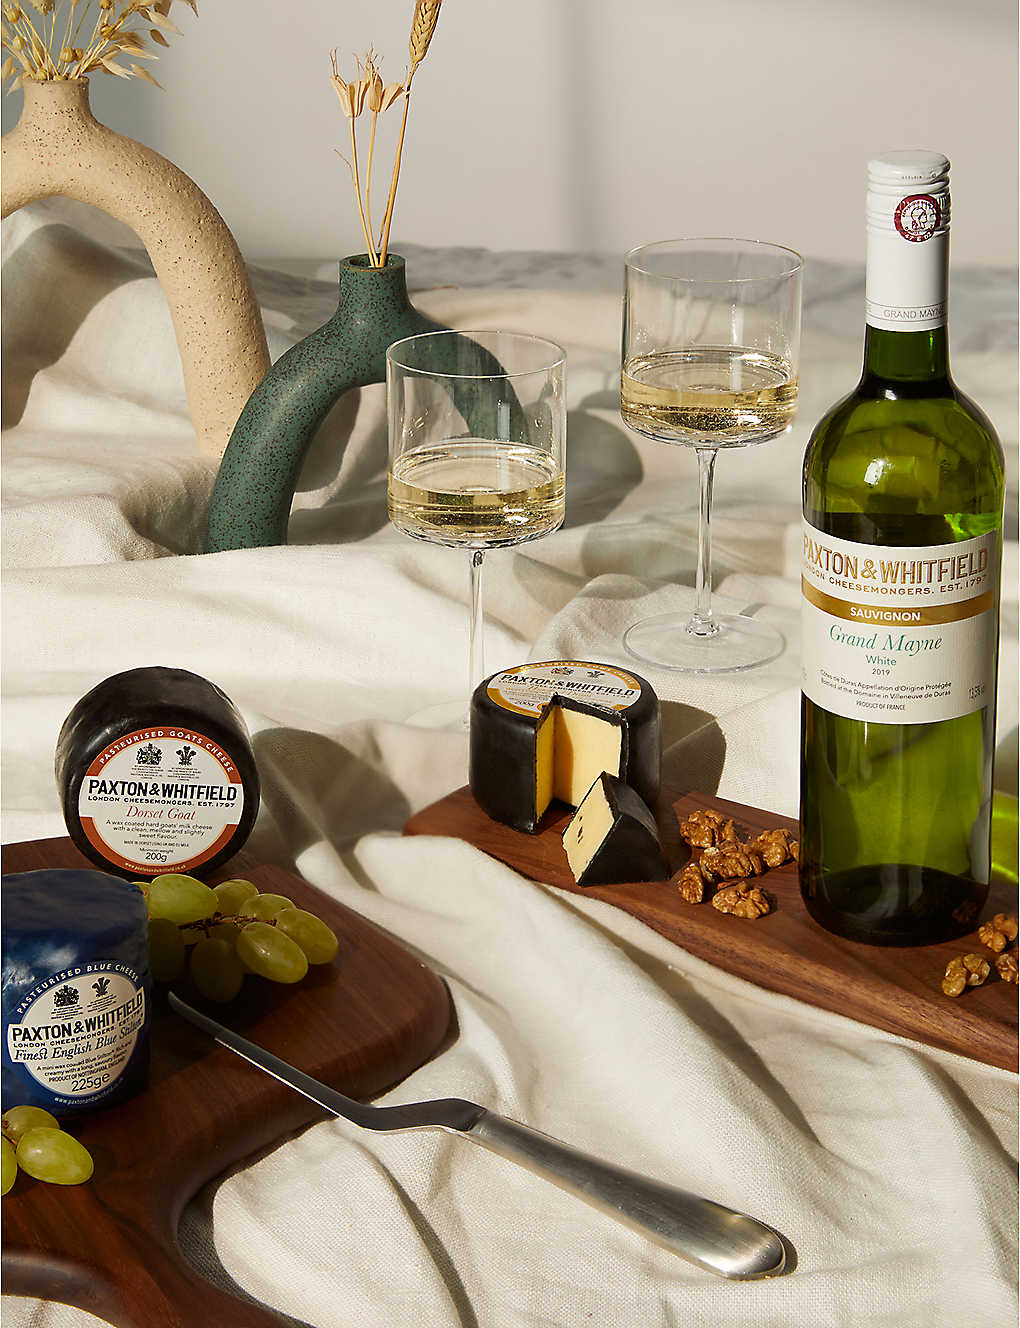 PAXTON & WHITFIELD: Three Cheese & White Wine Gift Set